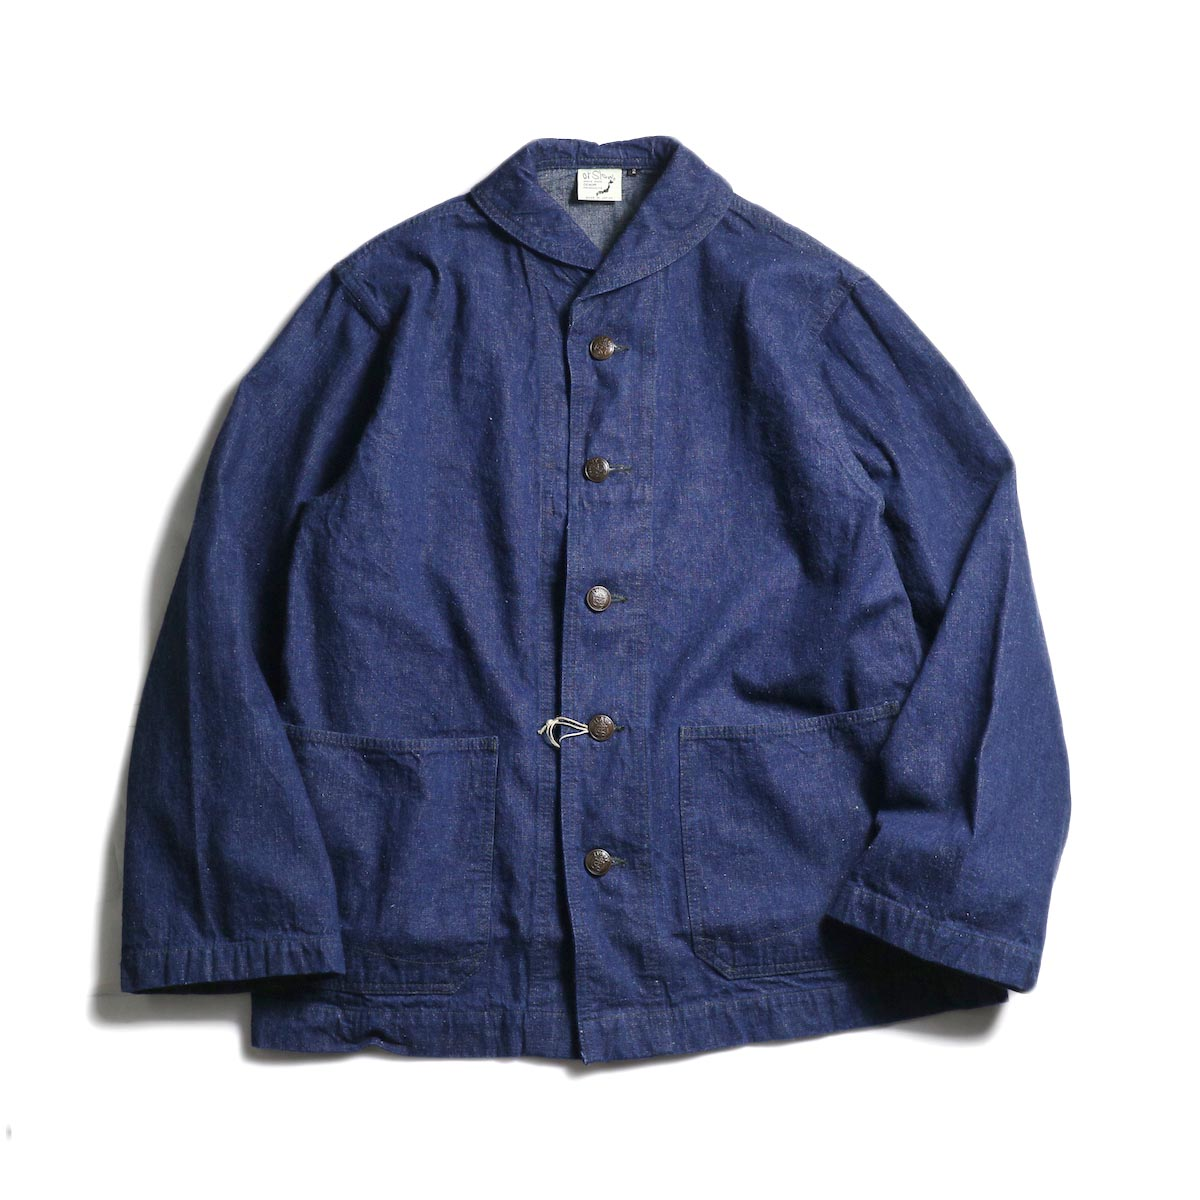 orSlow / US NAVY SHAWL COLLAR JACKET (One Wash)